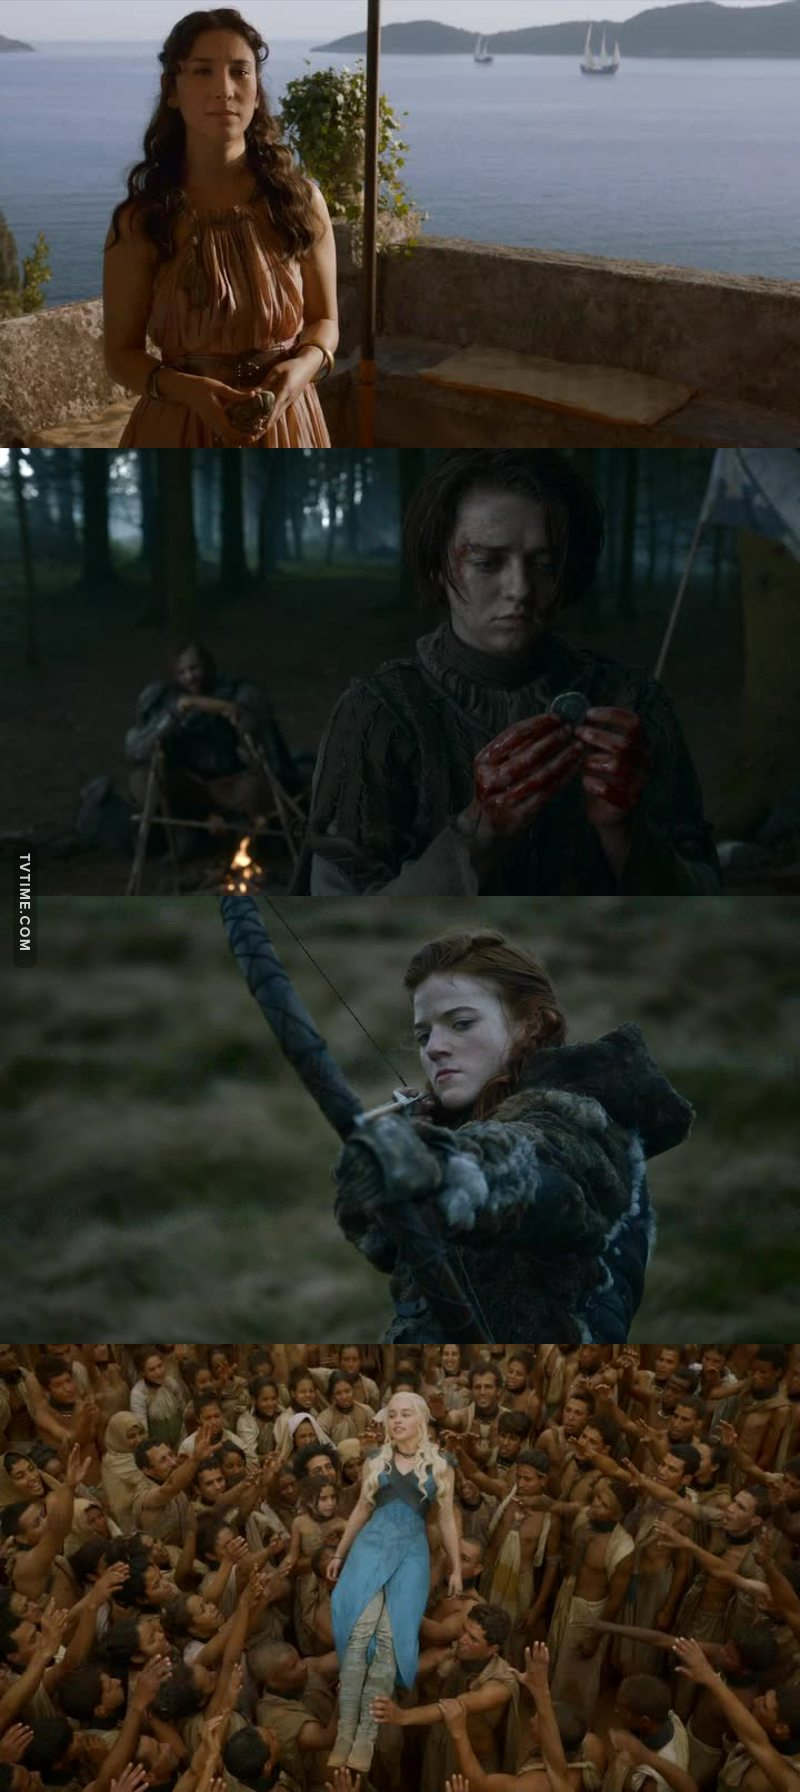 The badass female characters in this show give me life